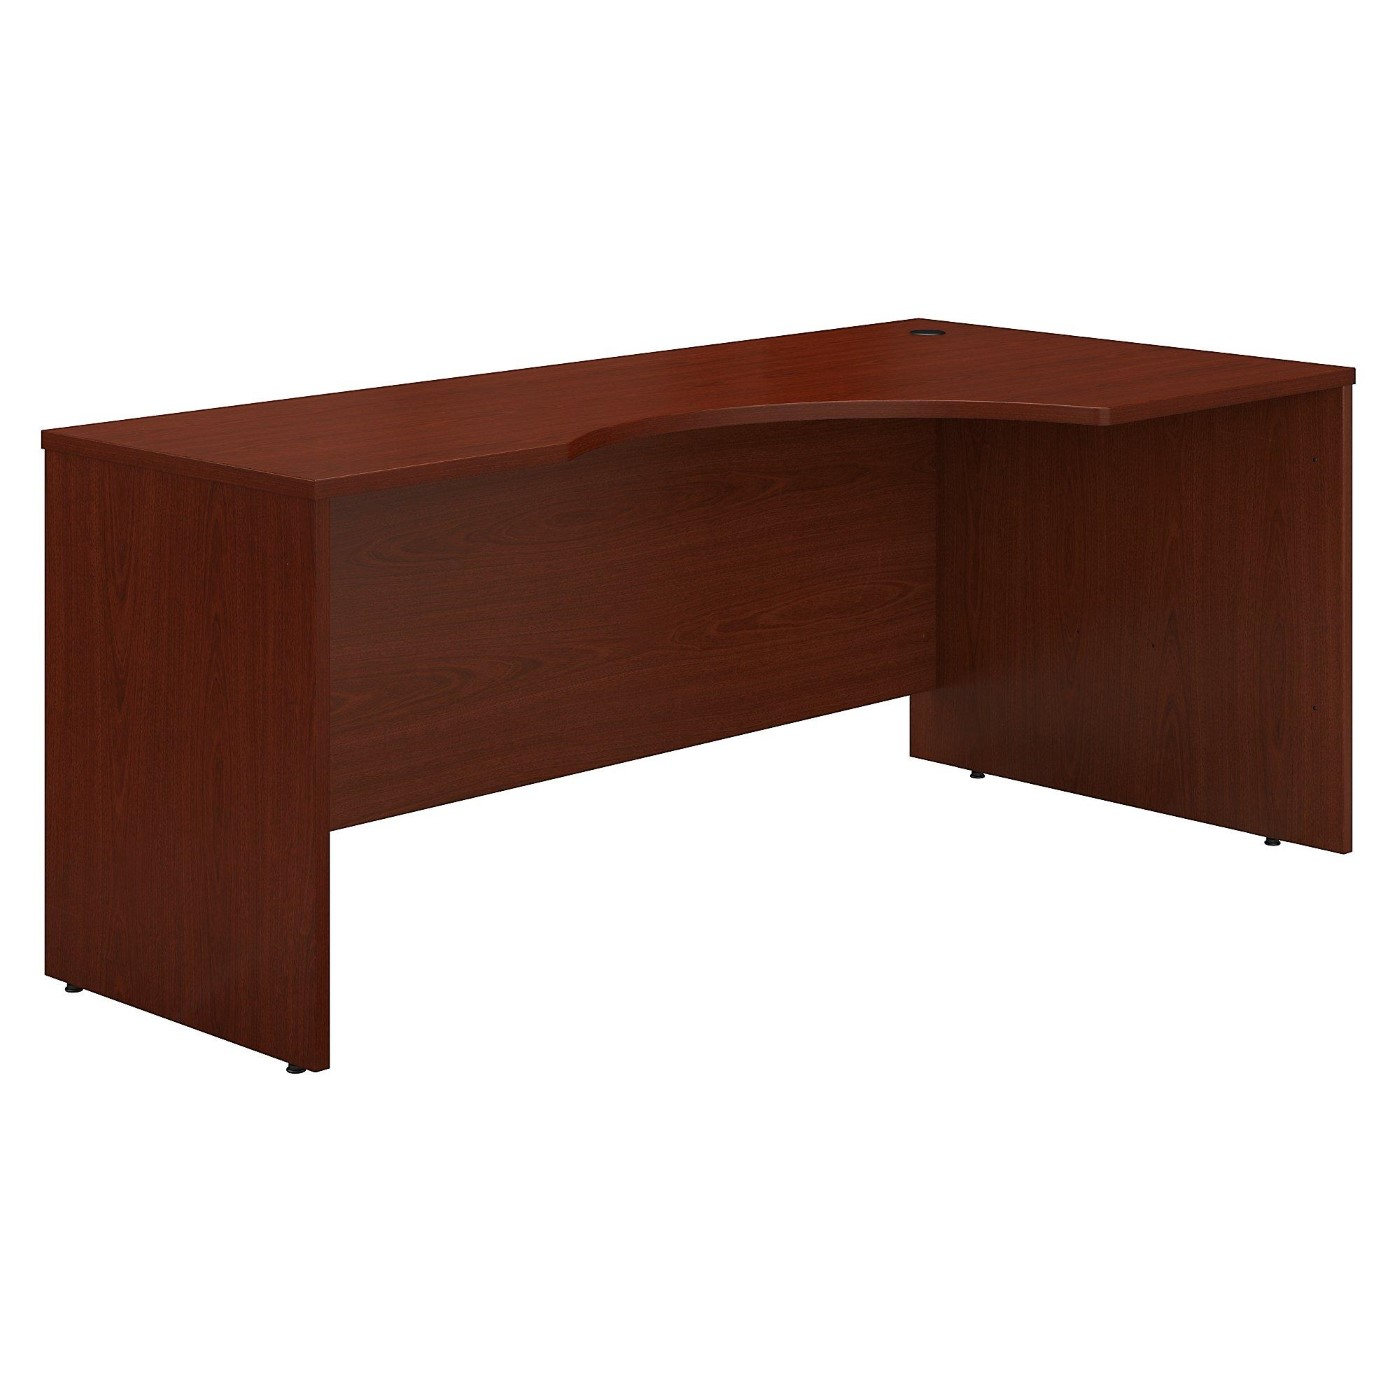 BUSH BUSINESS FURNITURE SERIES C 72W LEFT HANDED CORNER DESK. FREE SHIPPING</font></b></font></b>&#x1F384<font color=red><b>ERGONOMICHOME HOLIDAY SALE - ENDS DEC. 17, 2019</b></font>&#x1F384